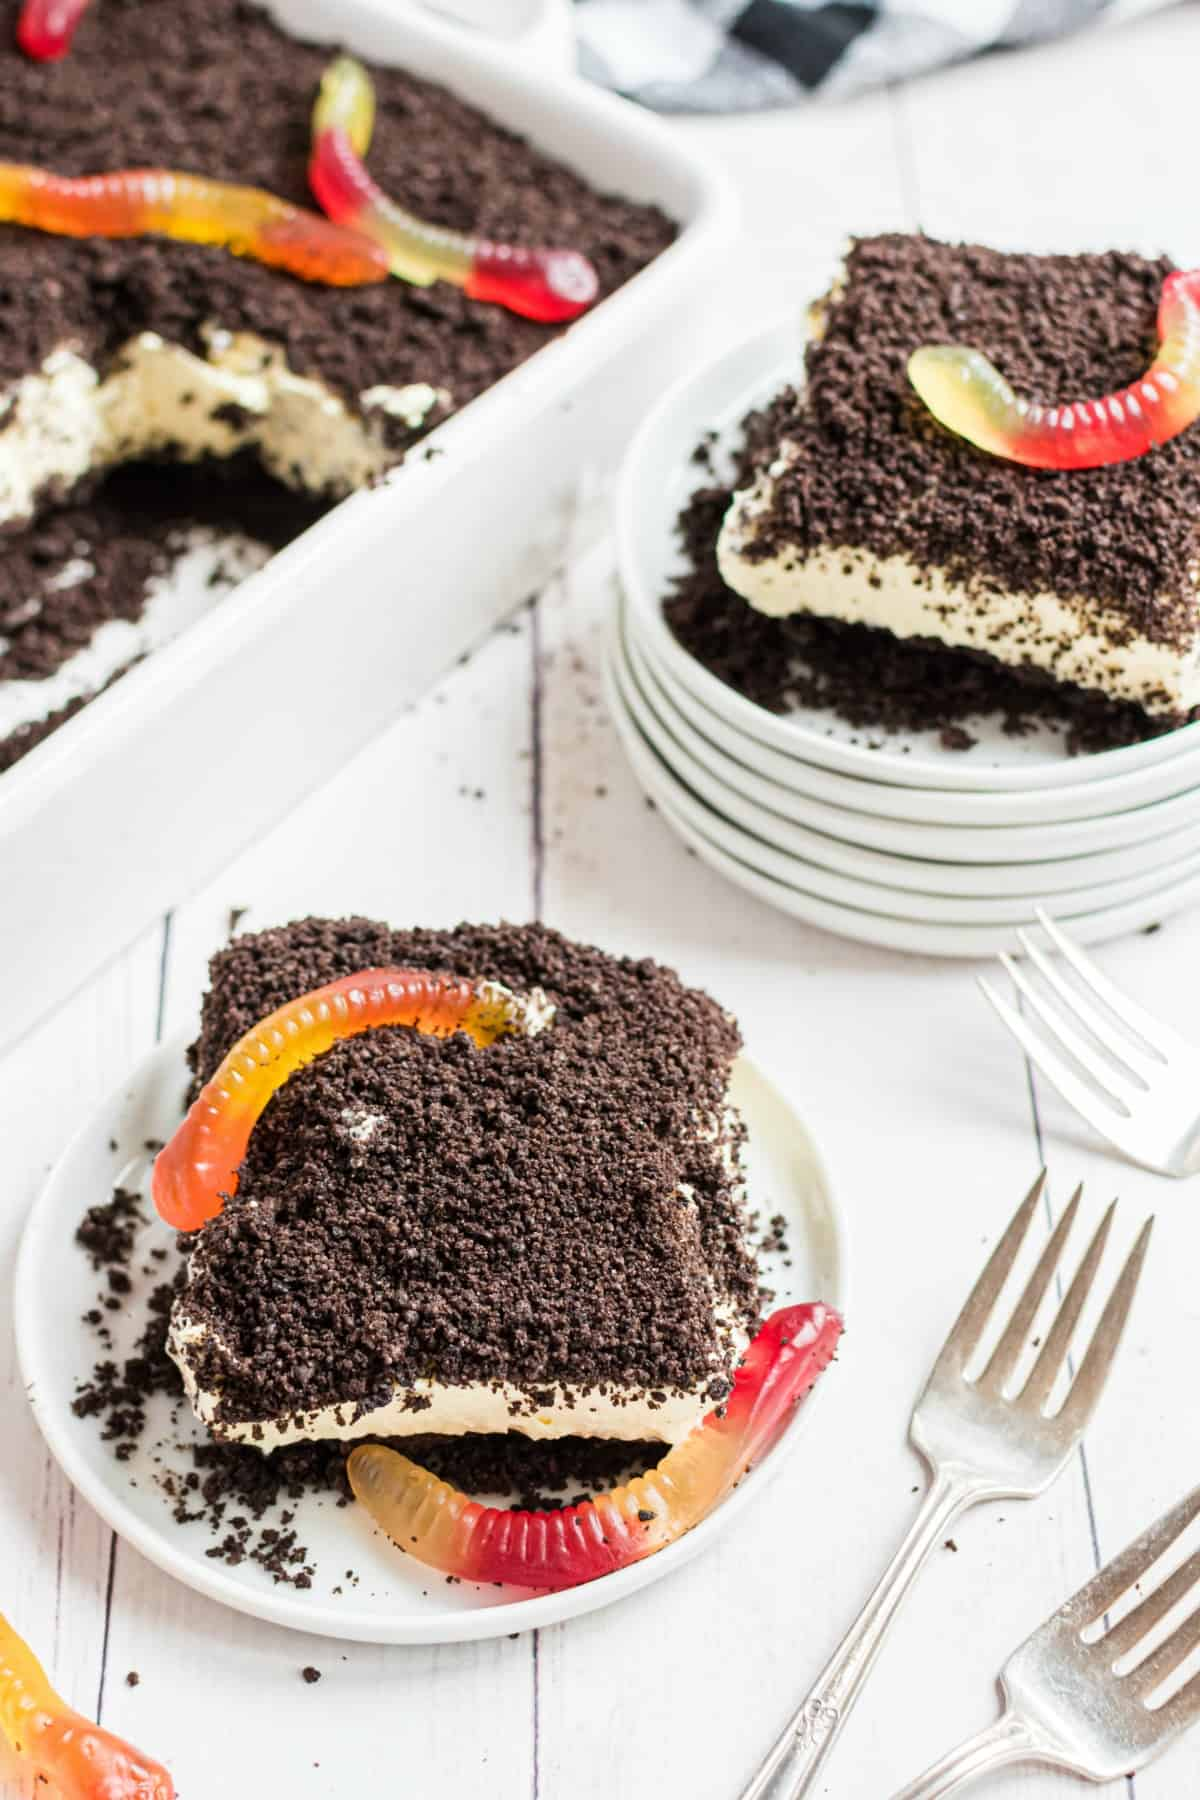 Vanilla dirt cake with gummi worms on top of crushed oreos.